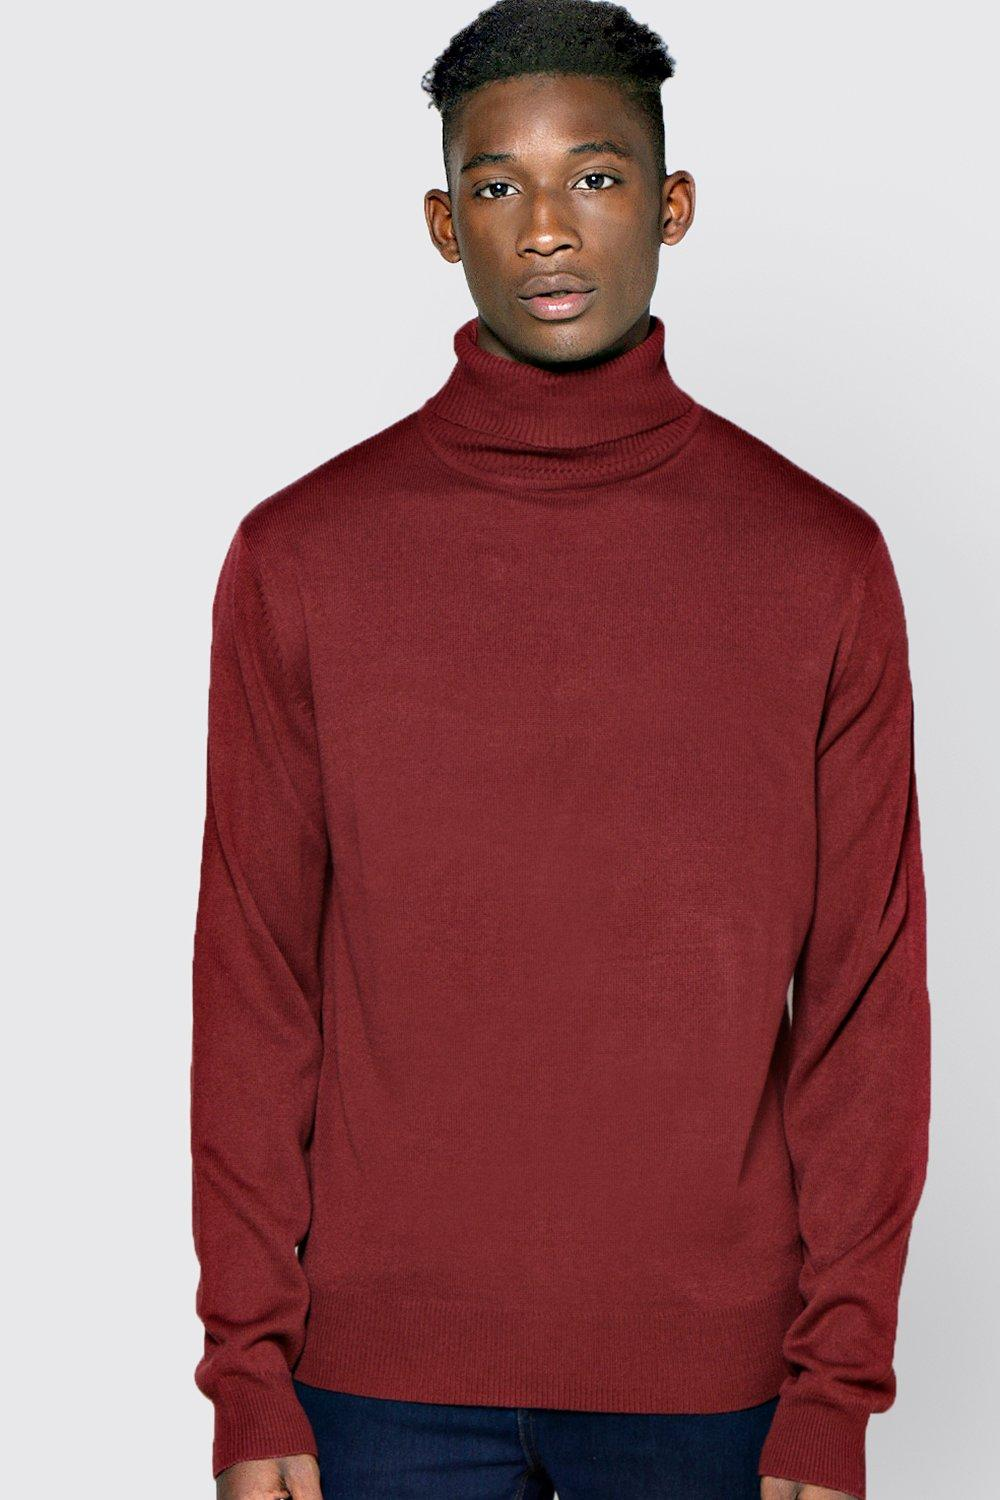 Styles range from Fair isle patterns to classic Shetland-character wool crew necks and chunky roll neck jumpers in a range of colours inspired by the landscape of Scotland. 49 Item(s) Page 1 of 3.